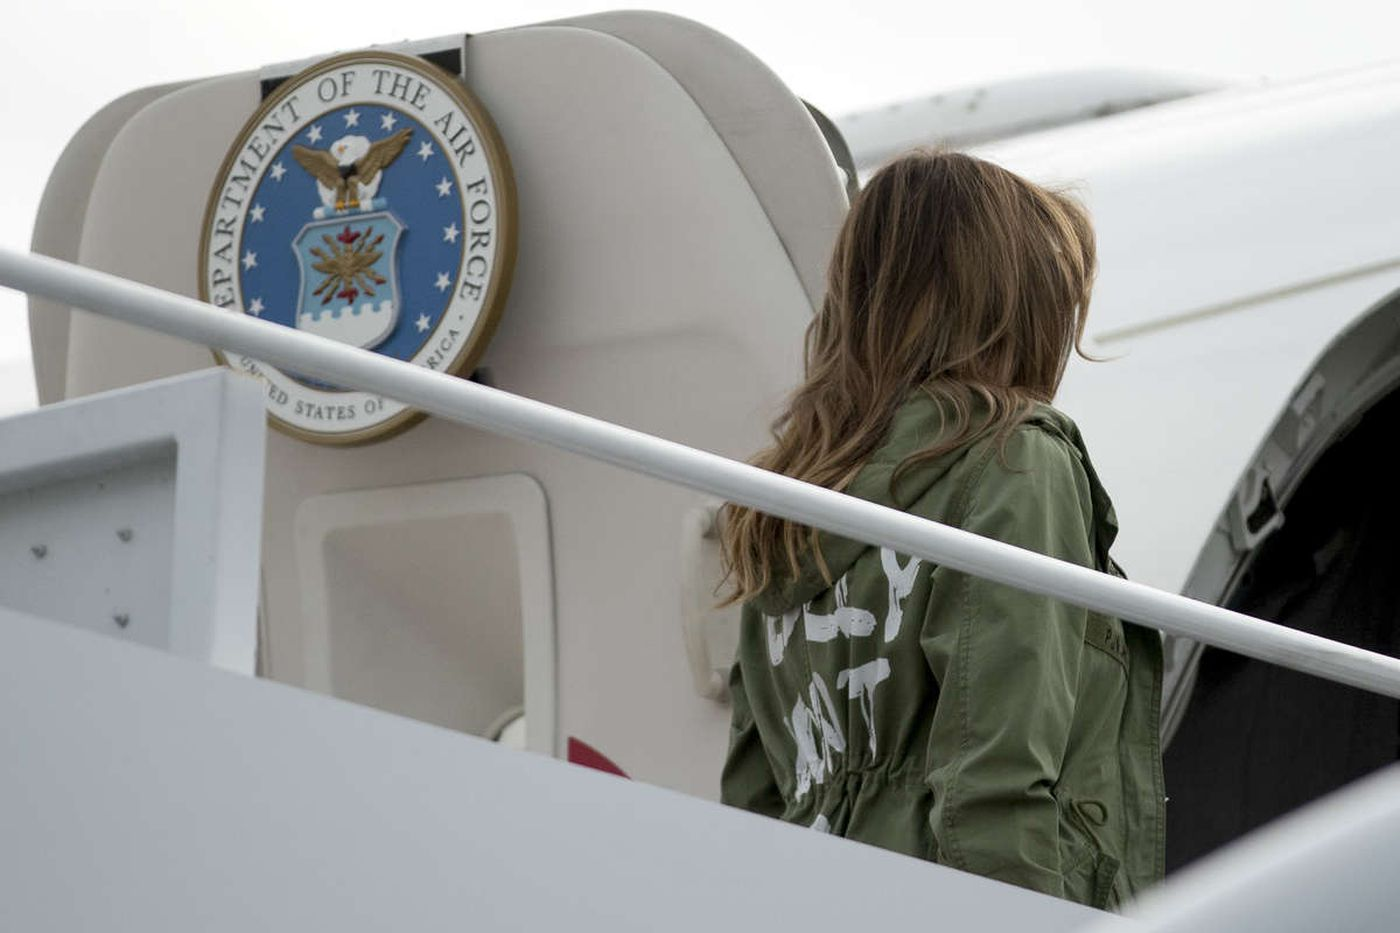 Don't be distracted from the immigration crisis by Melania Trump's fake fashion choice   Jenice Armstrong